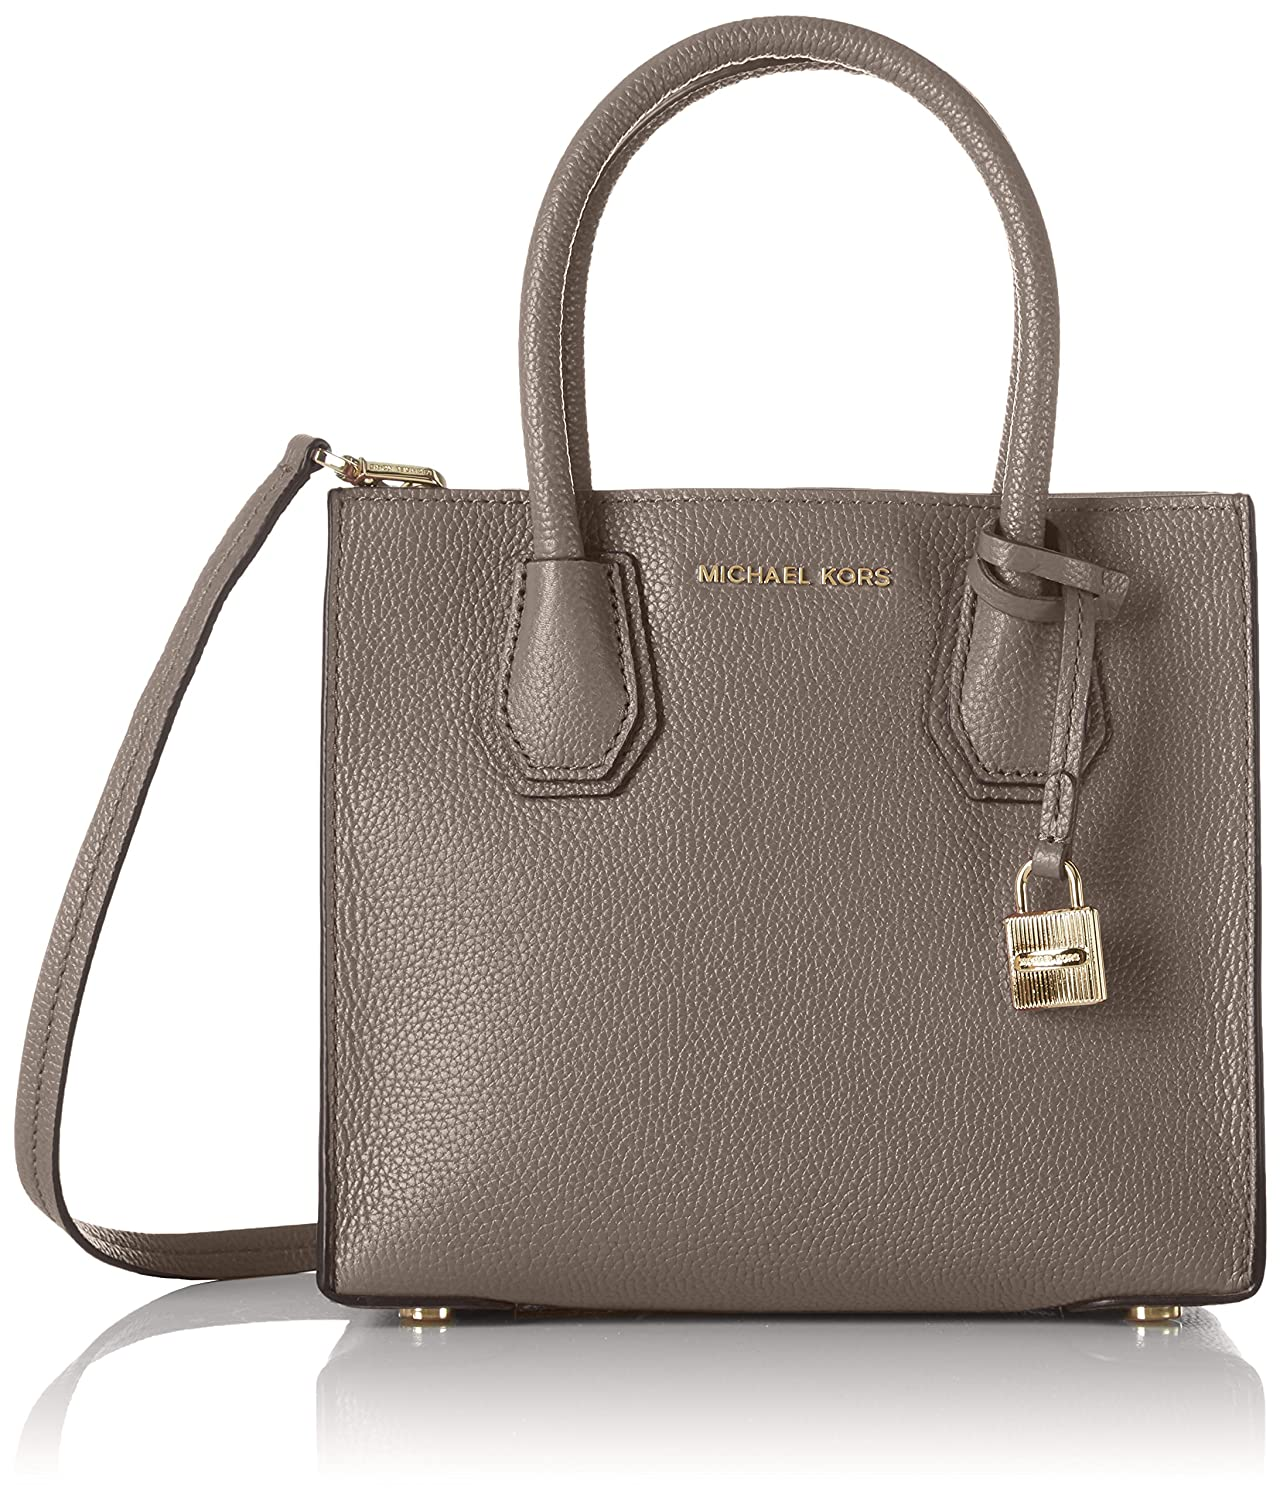 1fdd59ec51c Michael Michael Kors Women s Mercer Medium Shoulder Bag Grau (Cinder), 22 x  19 x 10 cm  Amazon.co.uk  Shoes   Bags